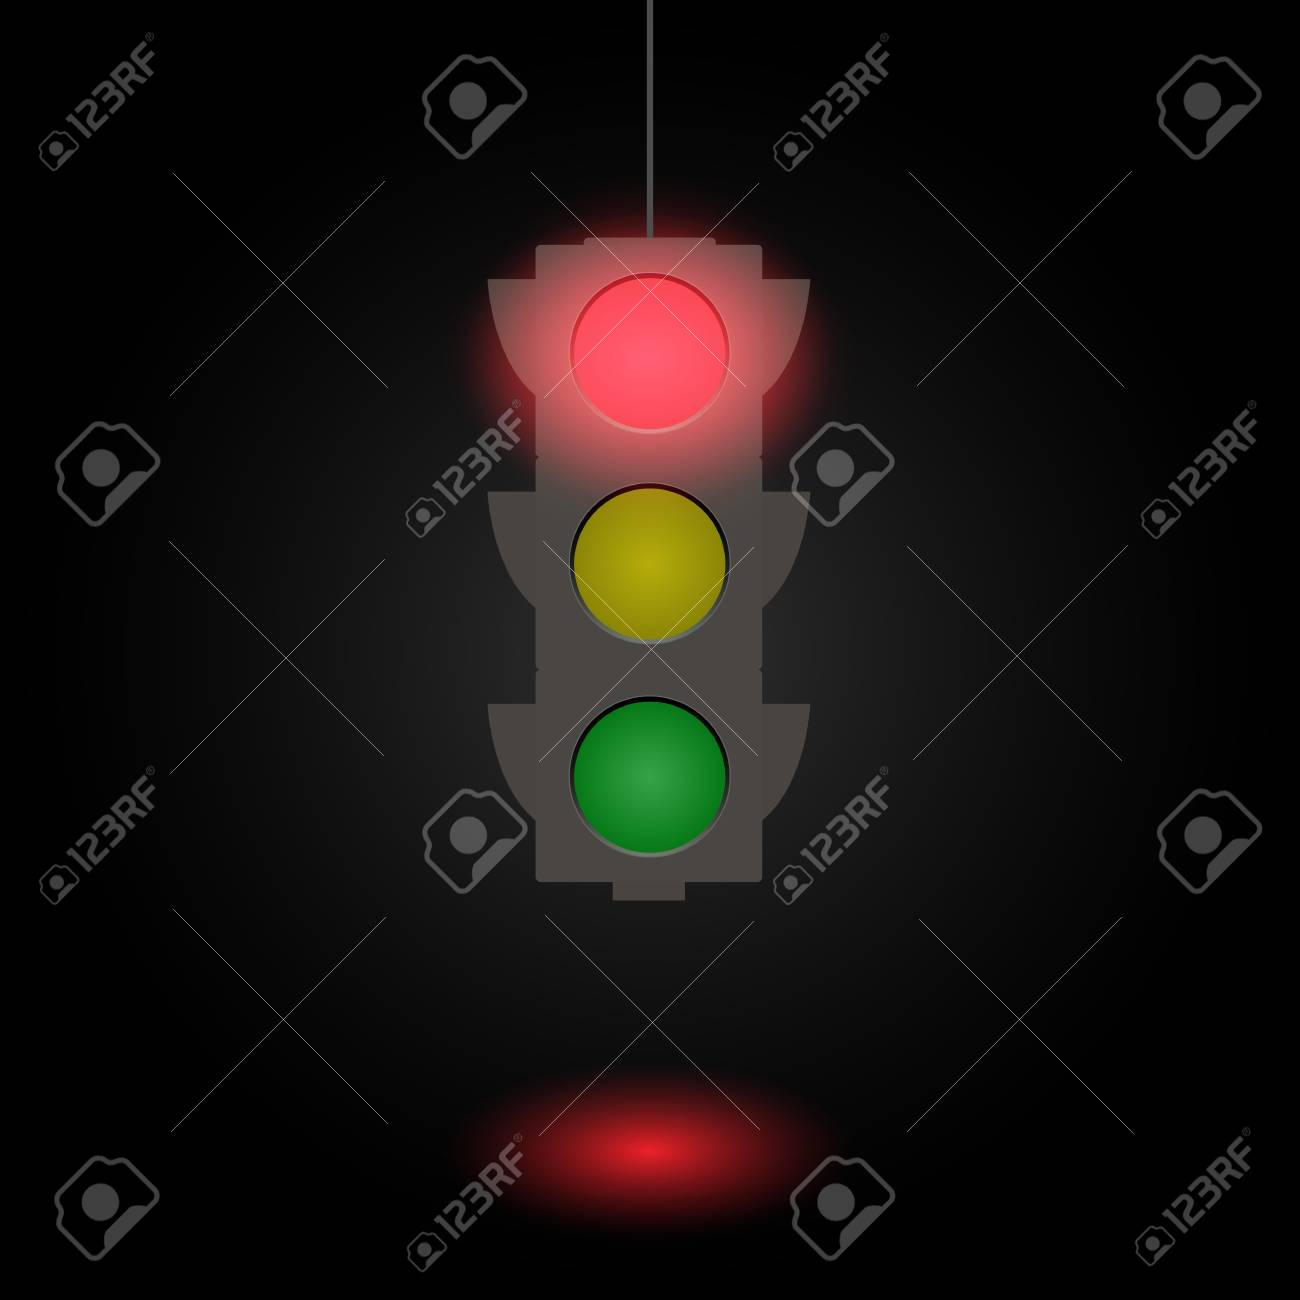 Flat illustration of a traffic light isolated on a dark background. - 97016395